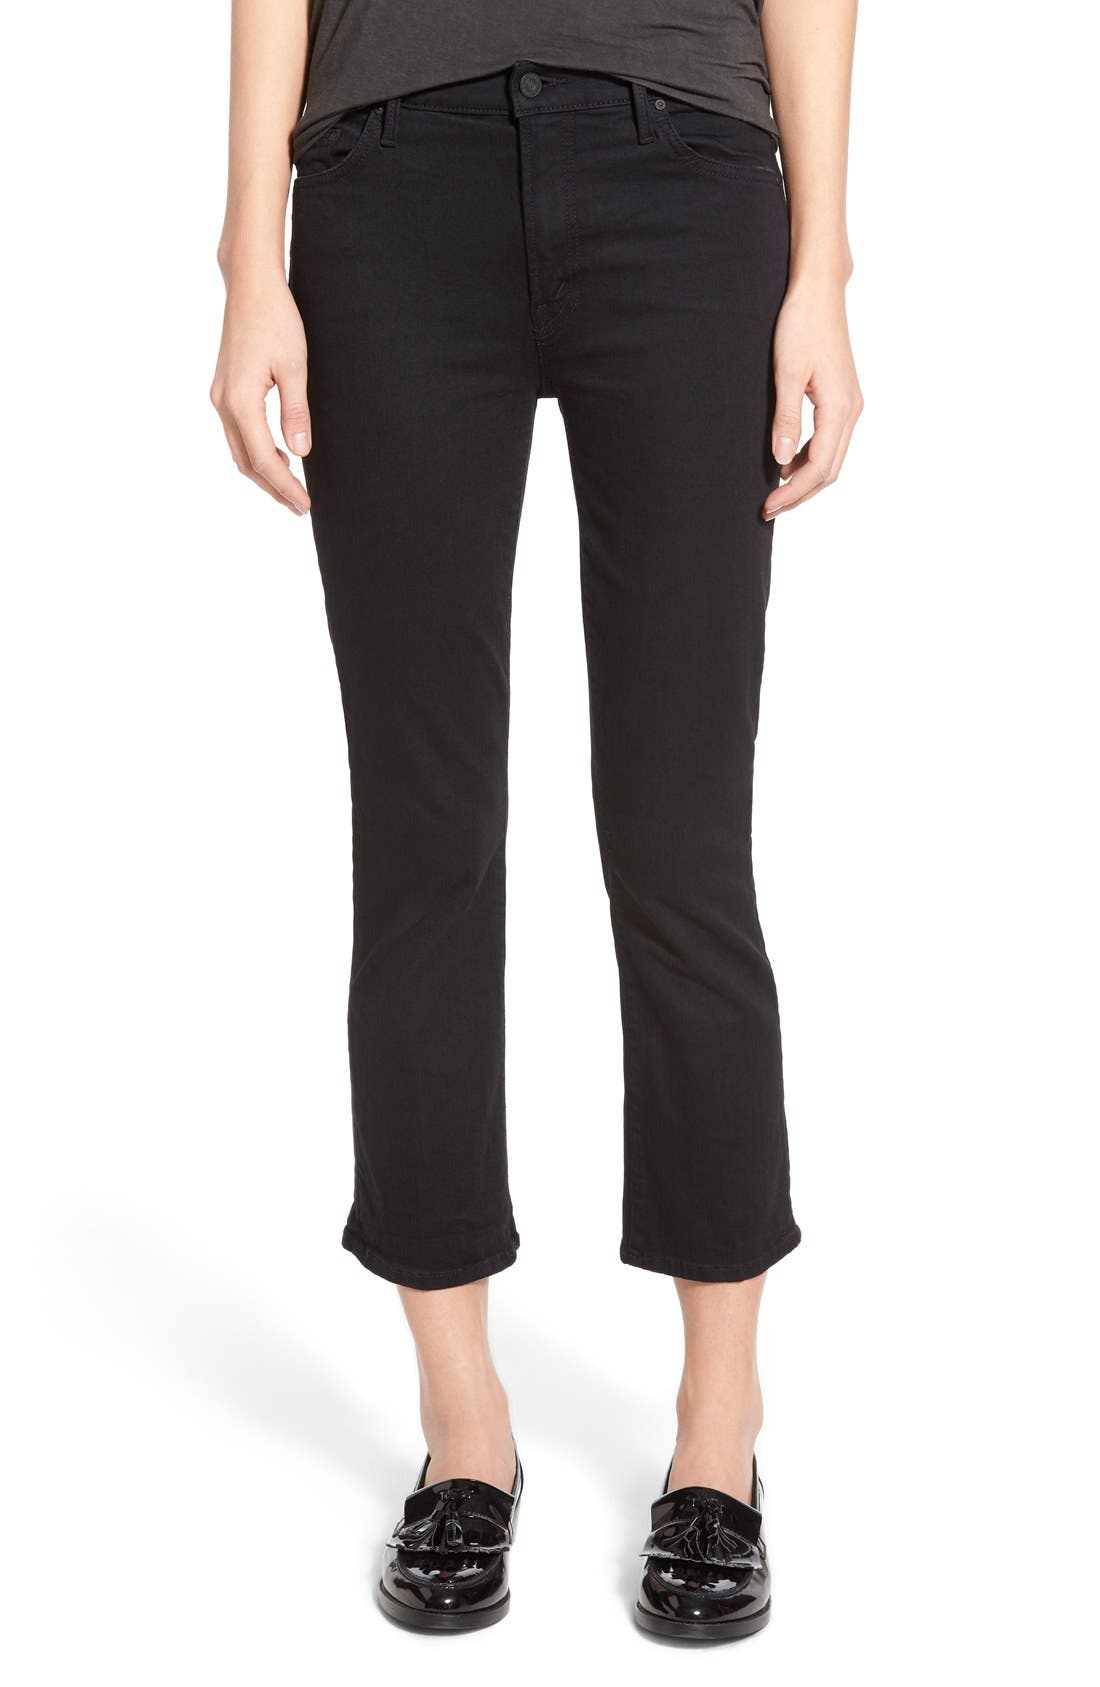 Alternate Image 1 Selected - MOTHER The Insider High Rise Crop Bootcut Jeans (Not Guilty)